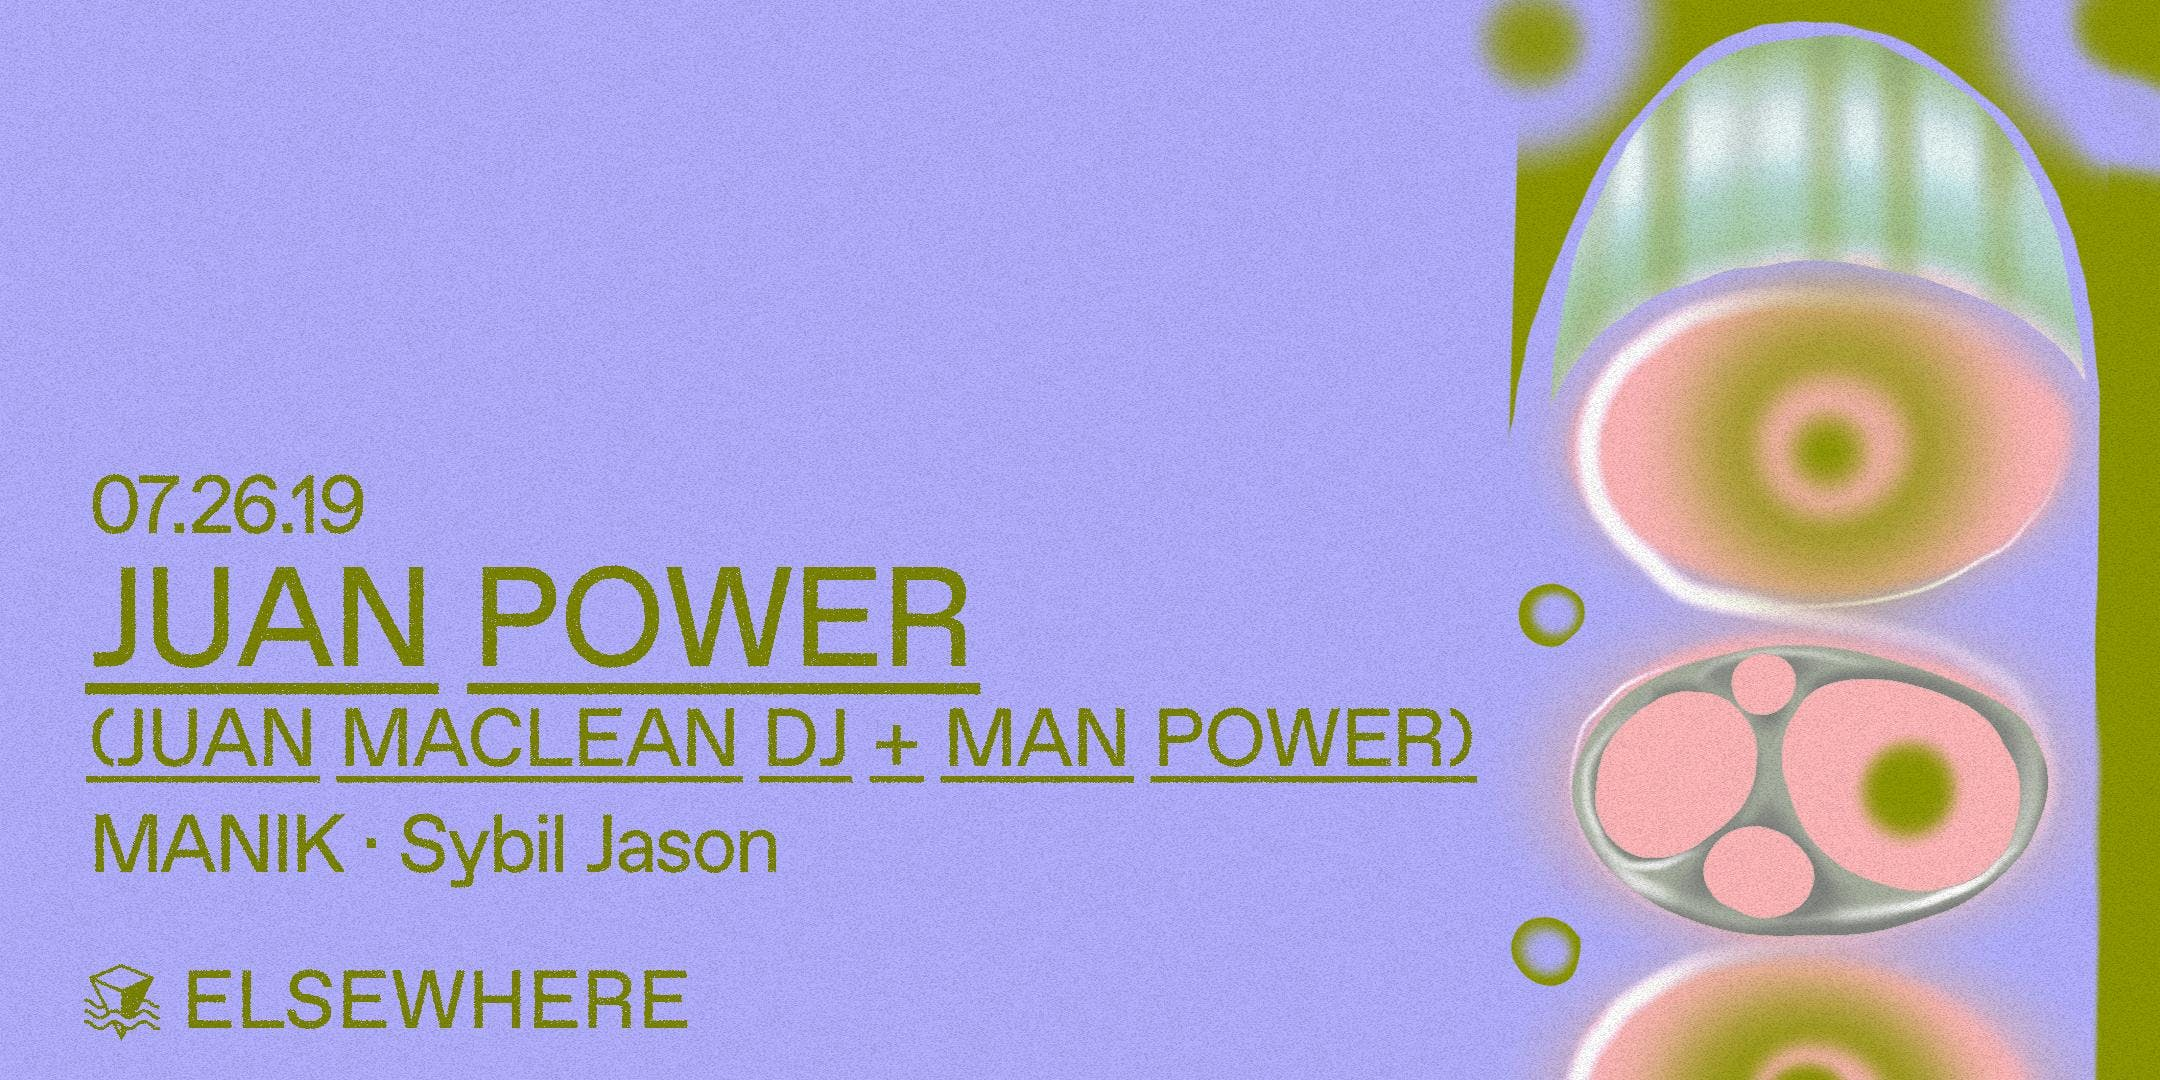 Juan Power (Juan MacLean DJ Set + Man Power), MANIK & Sybil Jason